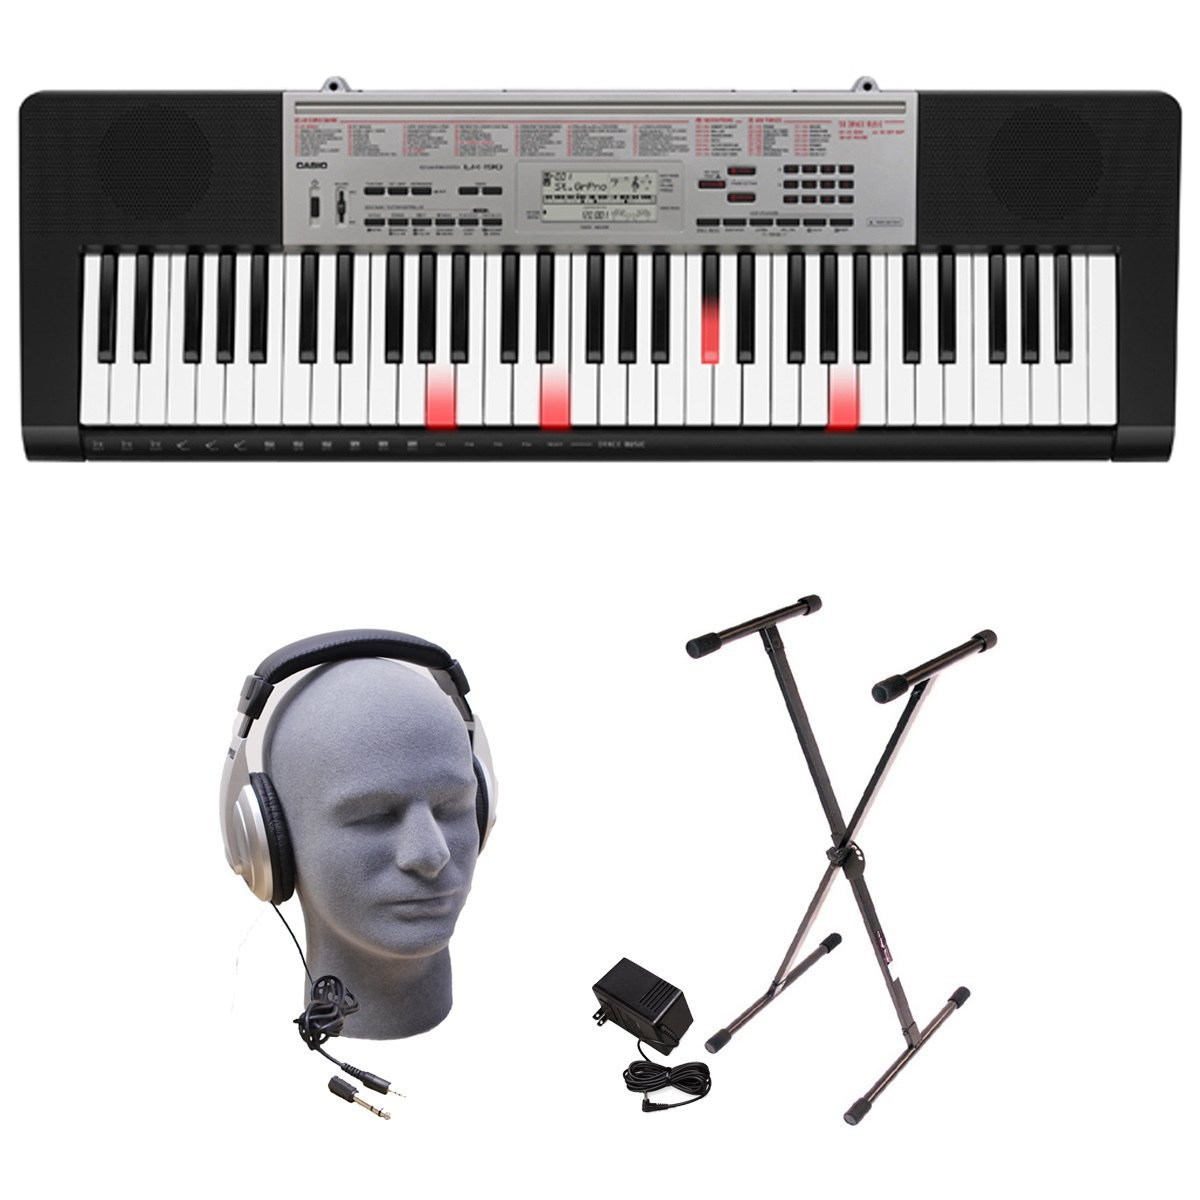 Casio LK-190 61-Key Premium Lighted Keyboard Pack with Stand, Headphones & Power Supply by Casio